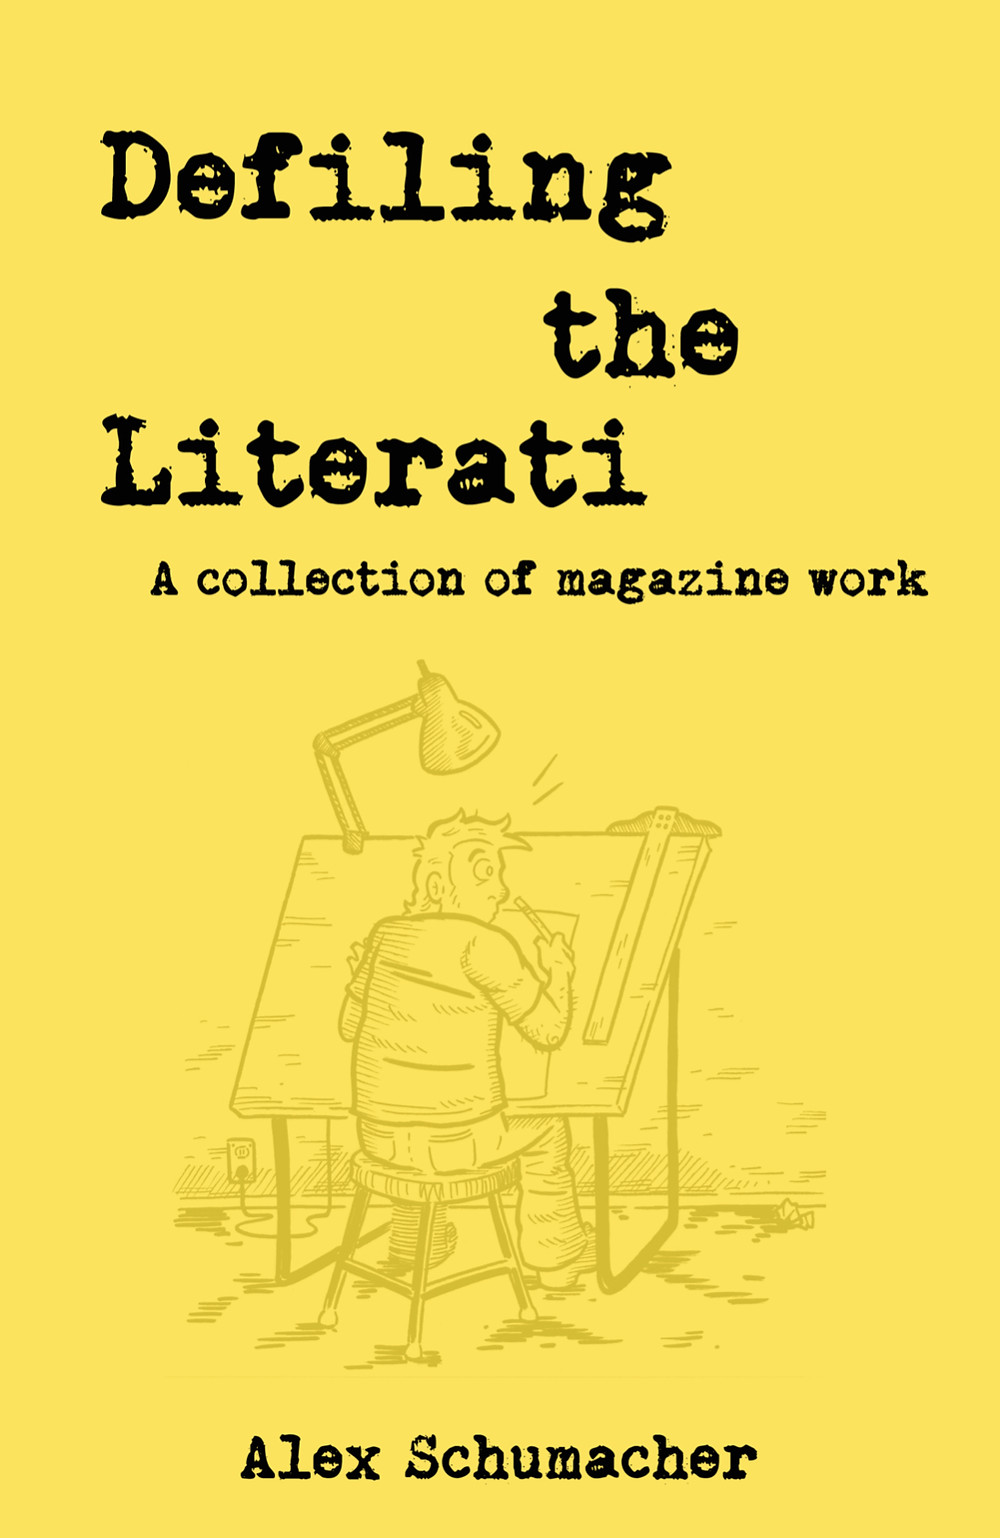 Defiling the Literati, A collection of magazine work, cover, self-published by Alex Schumacher